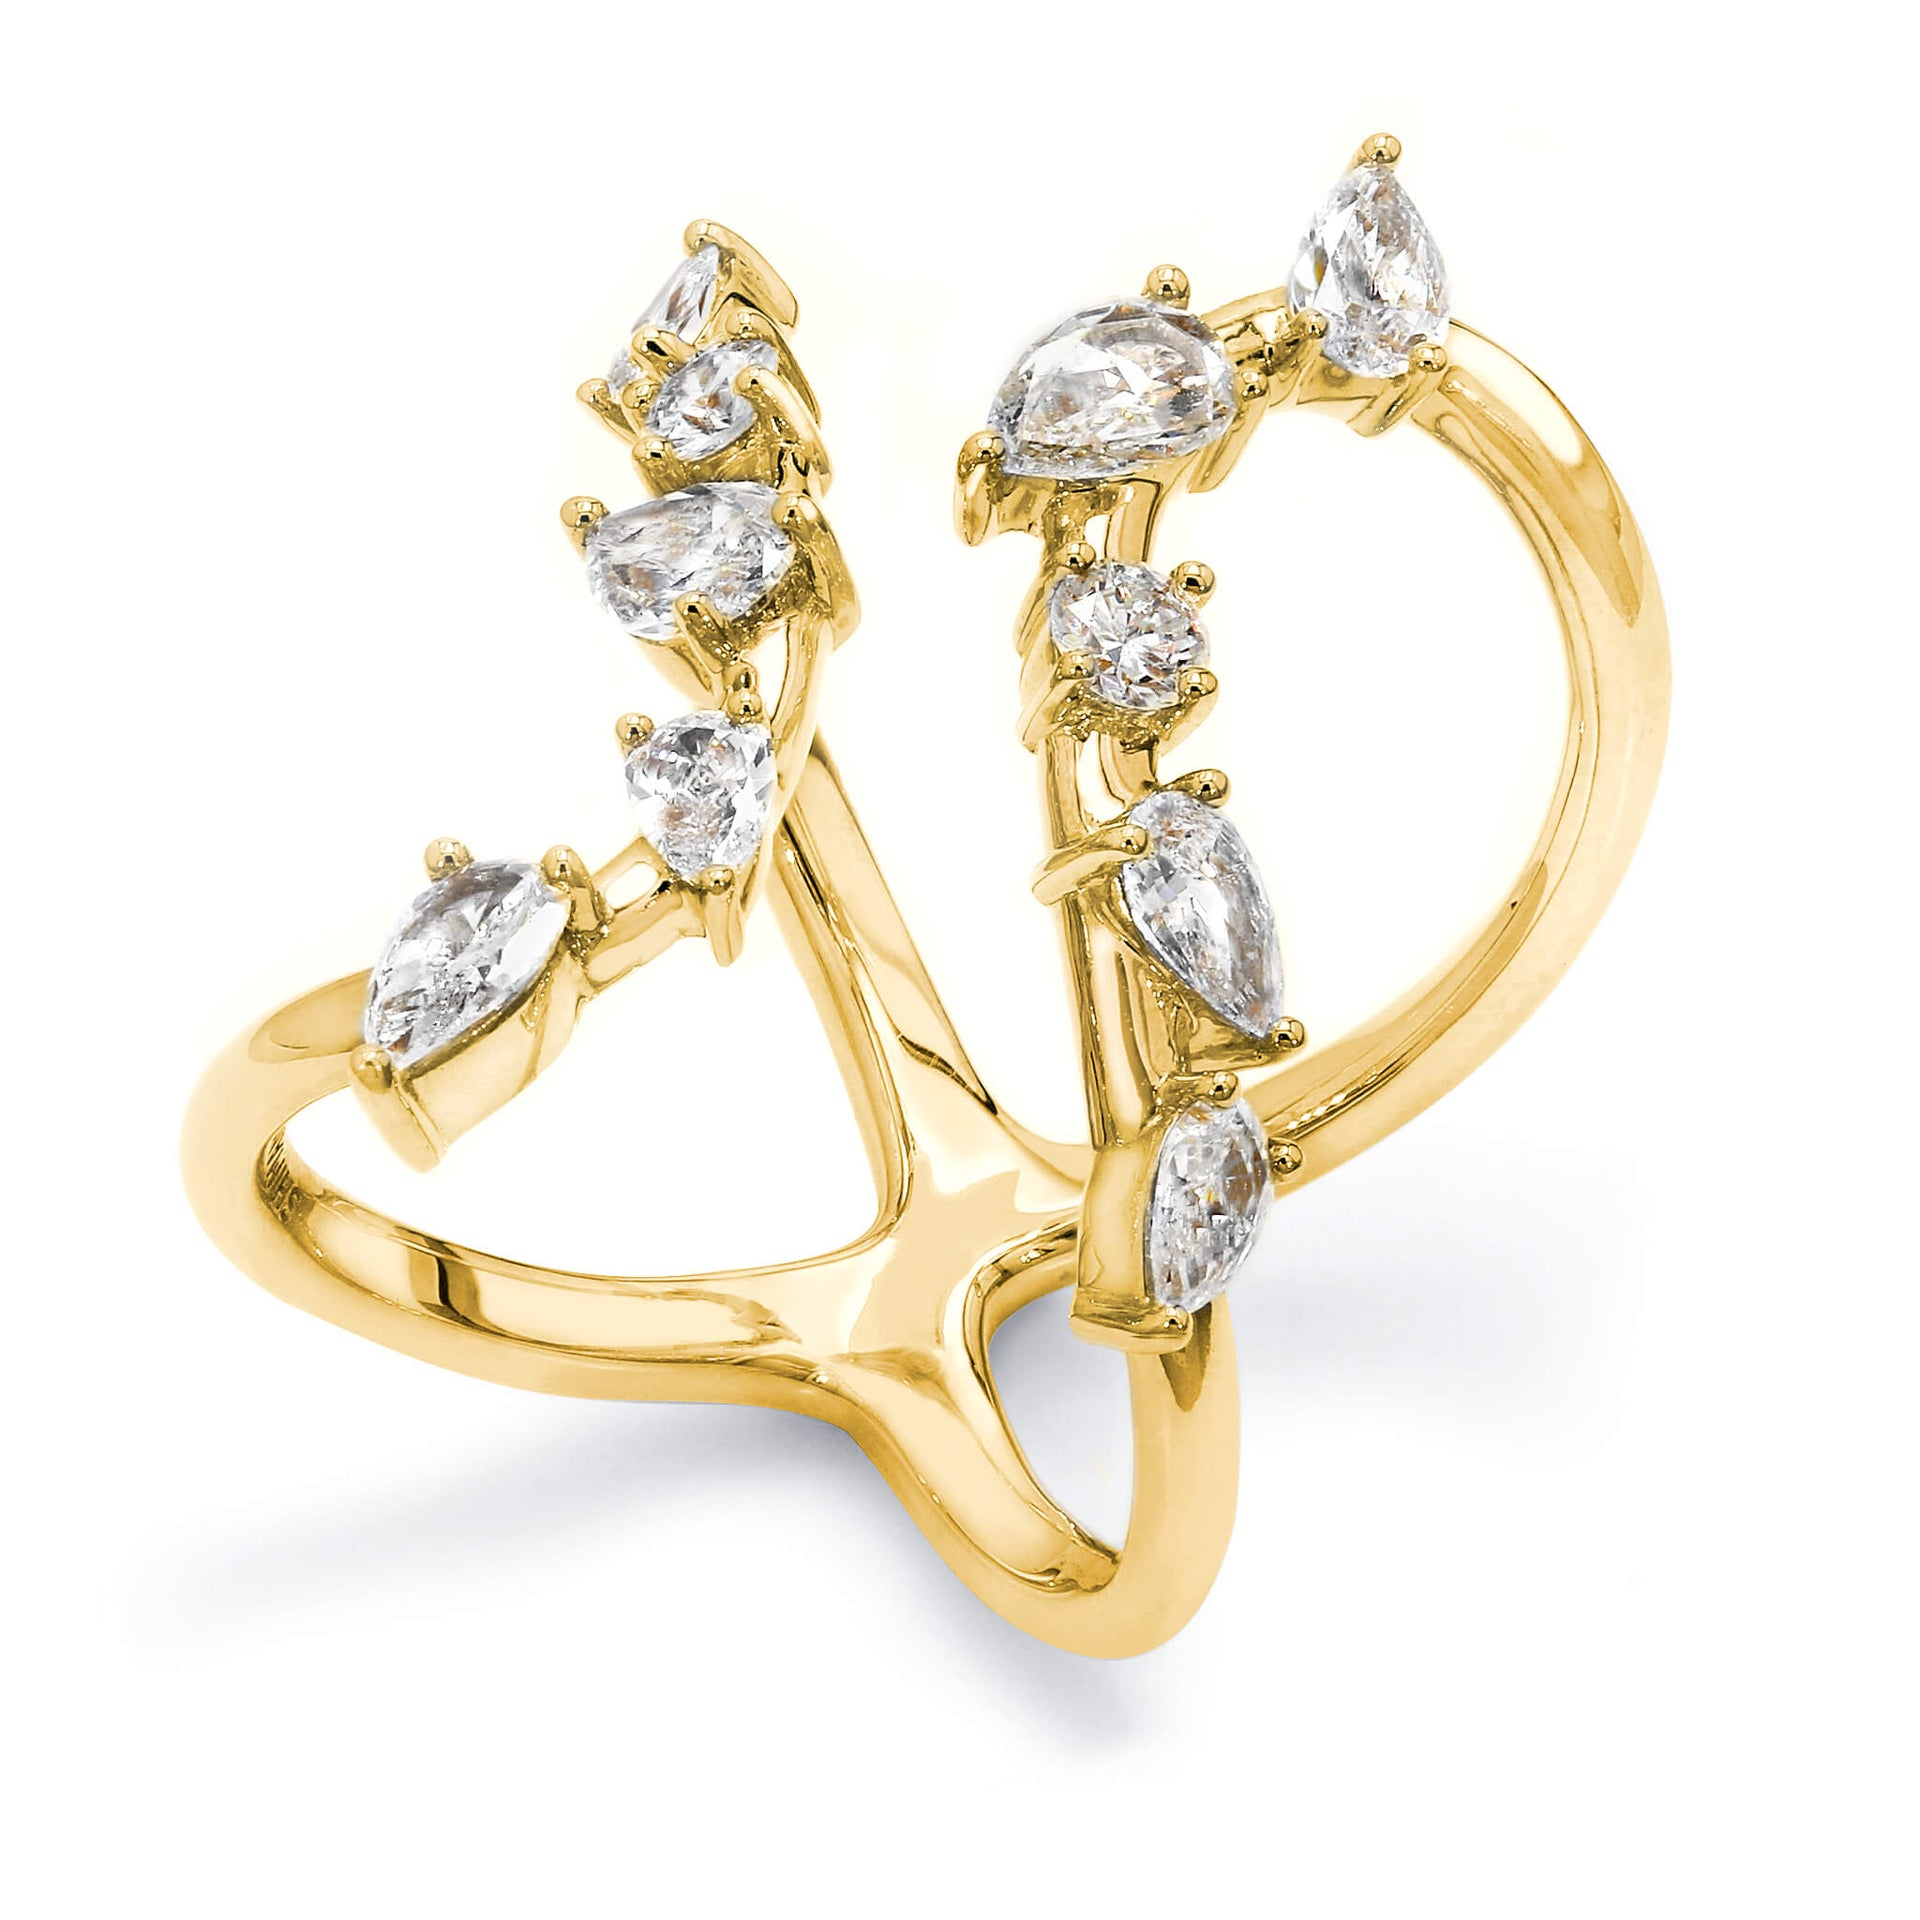 Flamenco Ring in 18K Yellow Gold Set With Diamonds 3D View